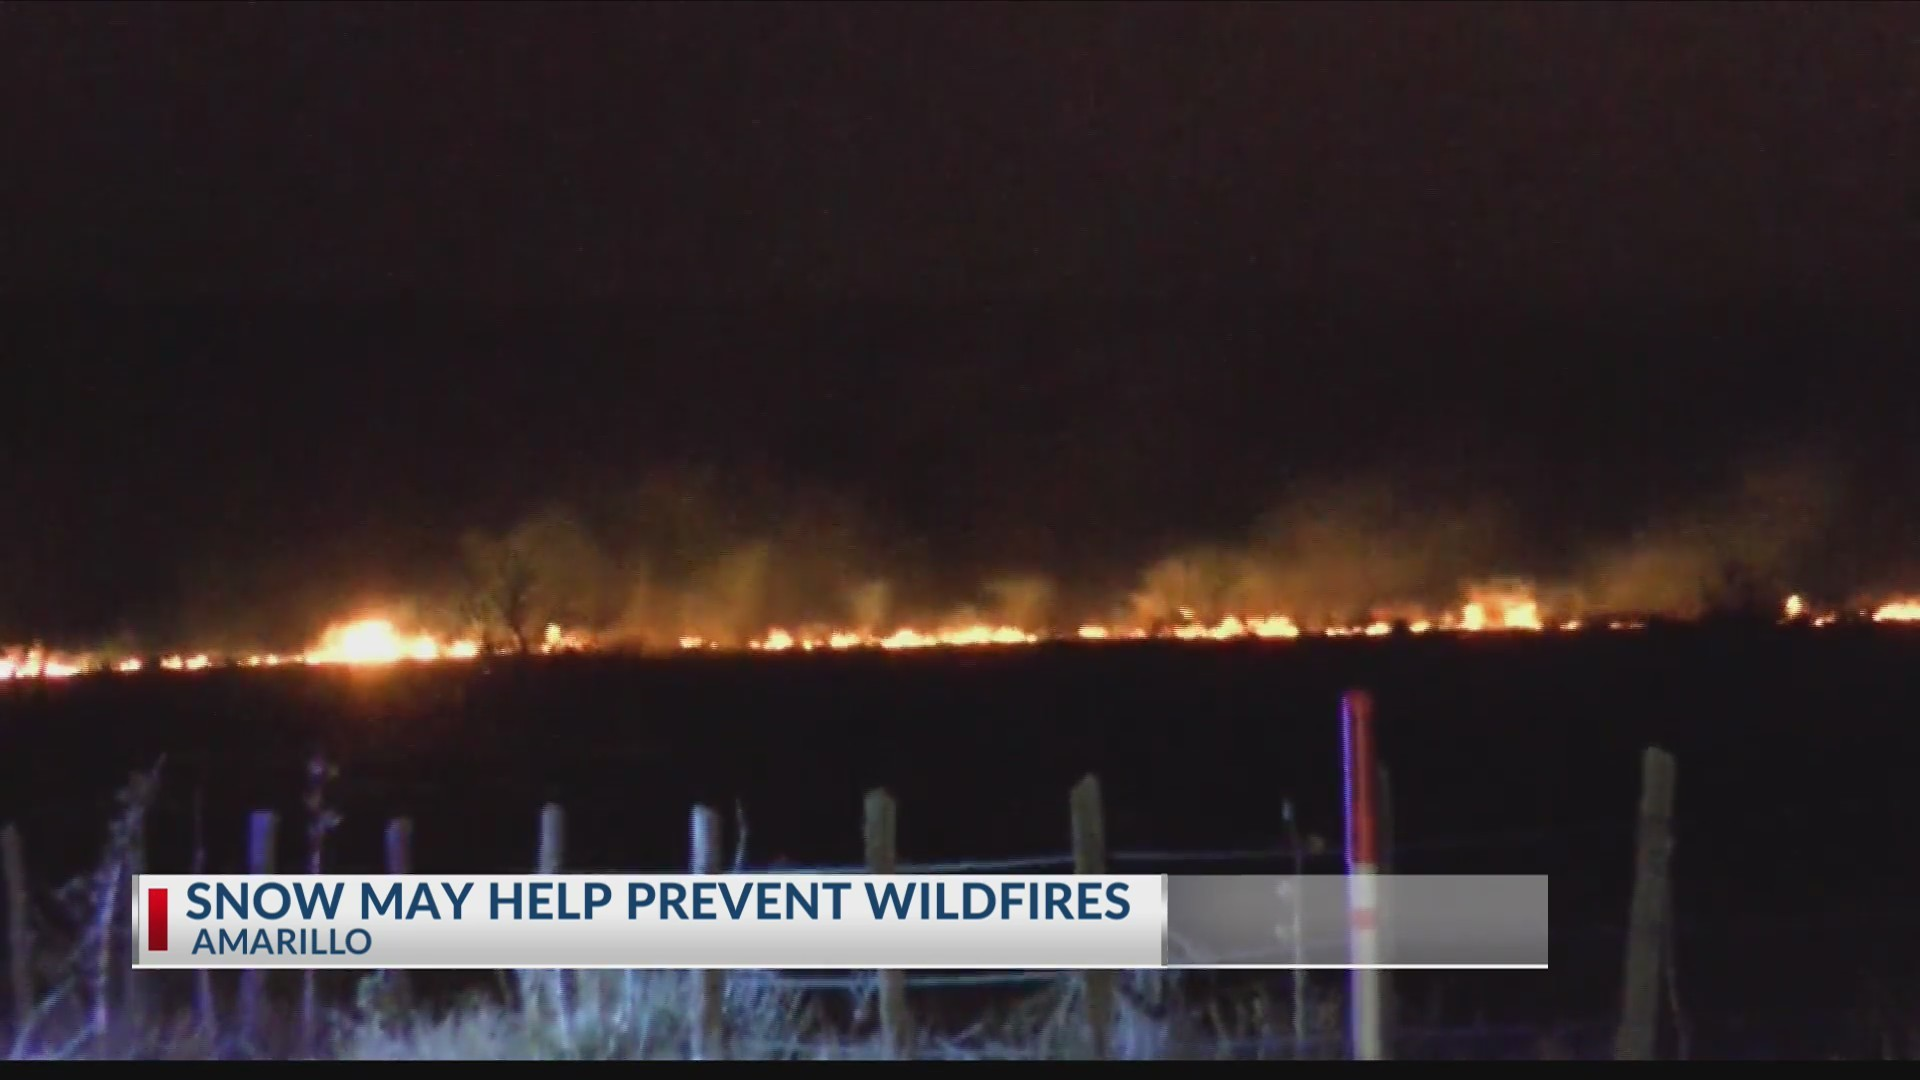 Snow May Decrease Chances of Wildfires